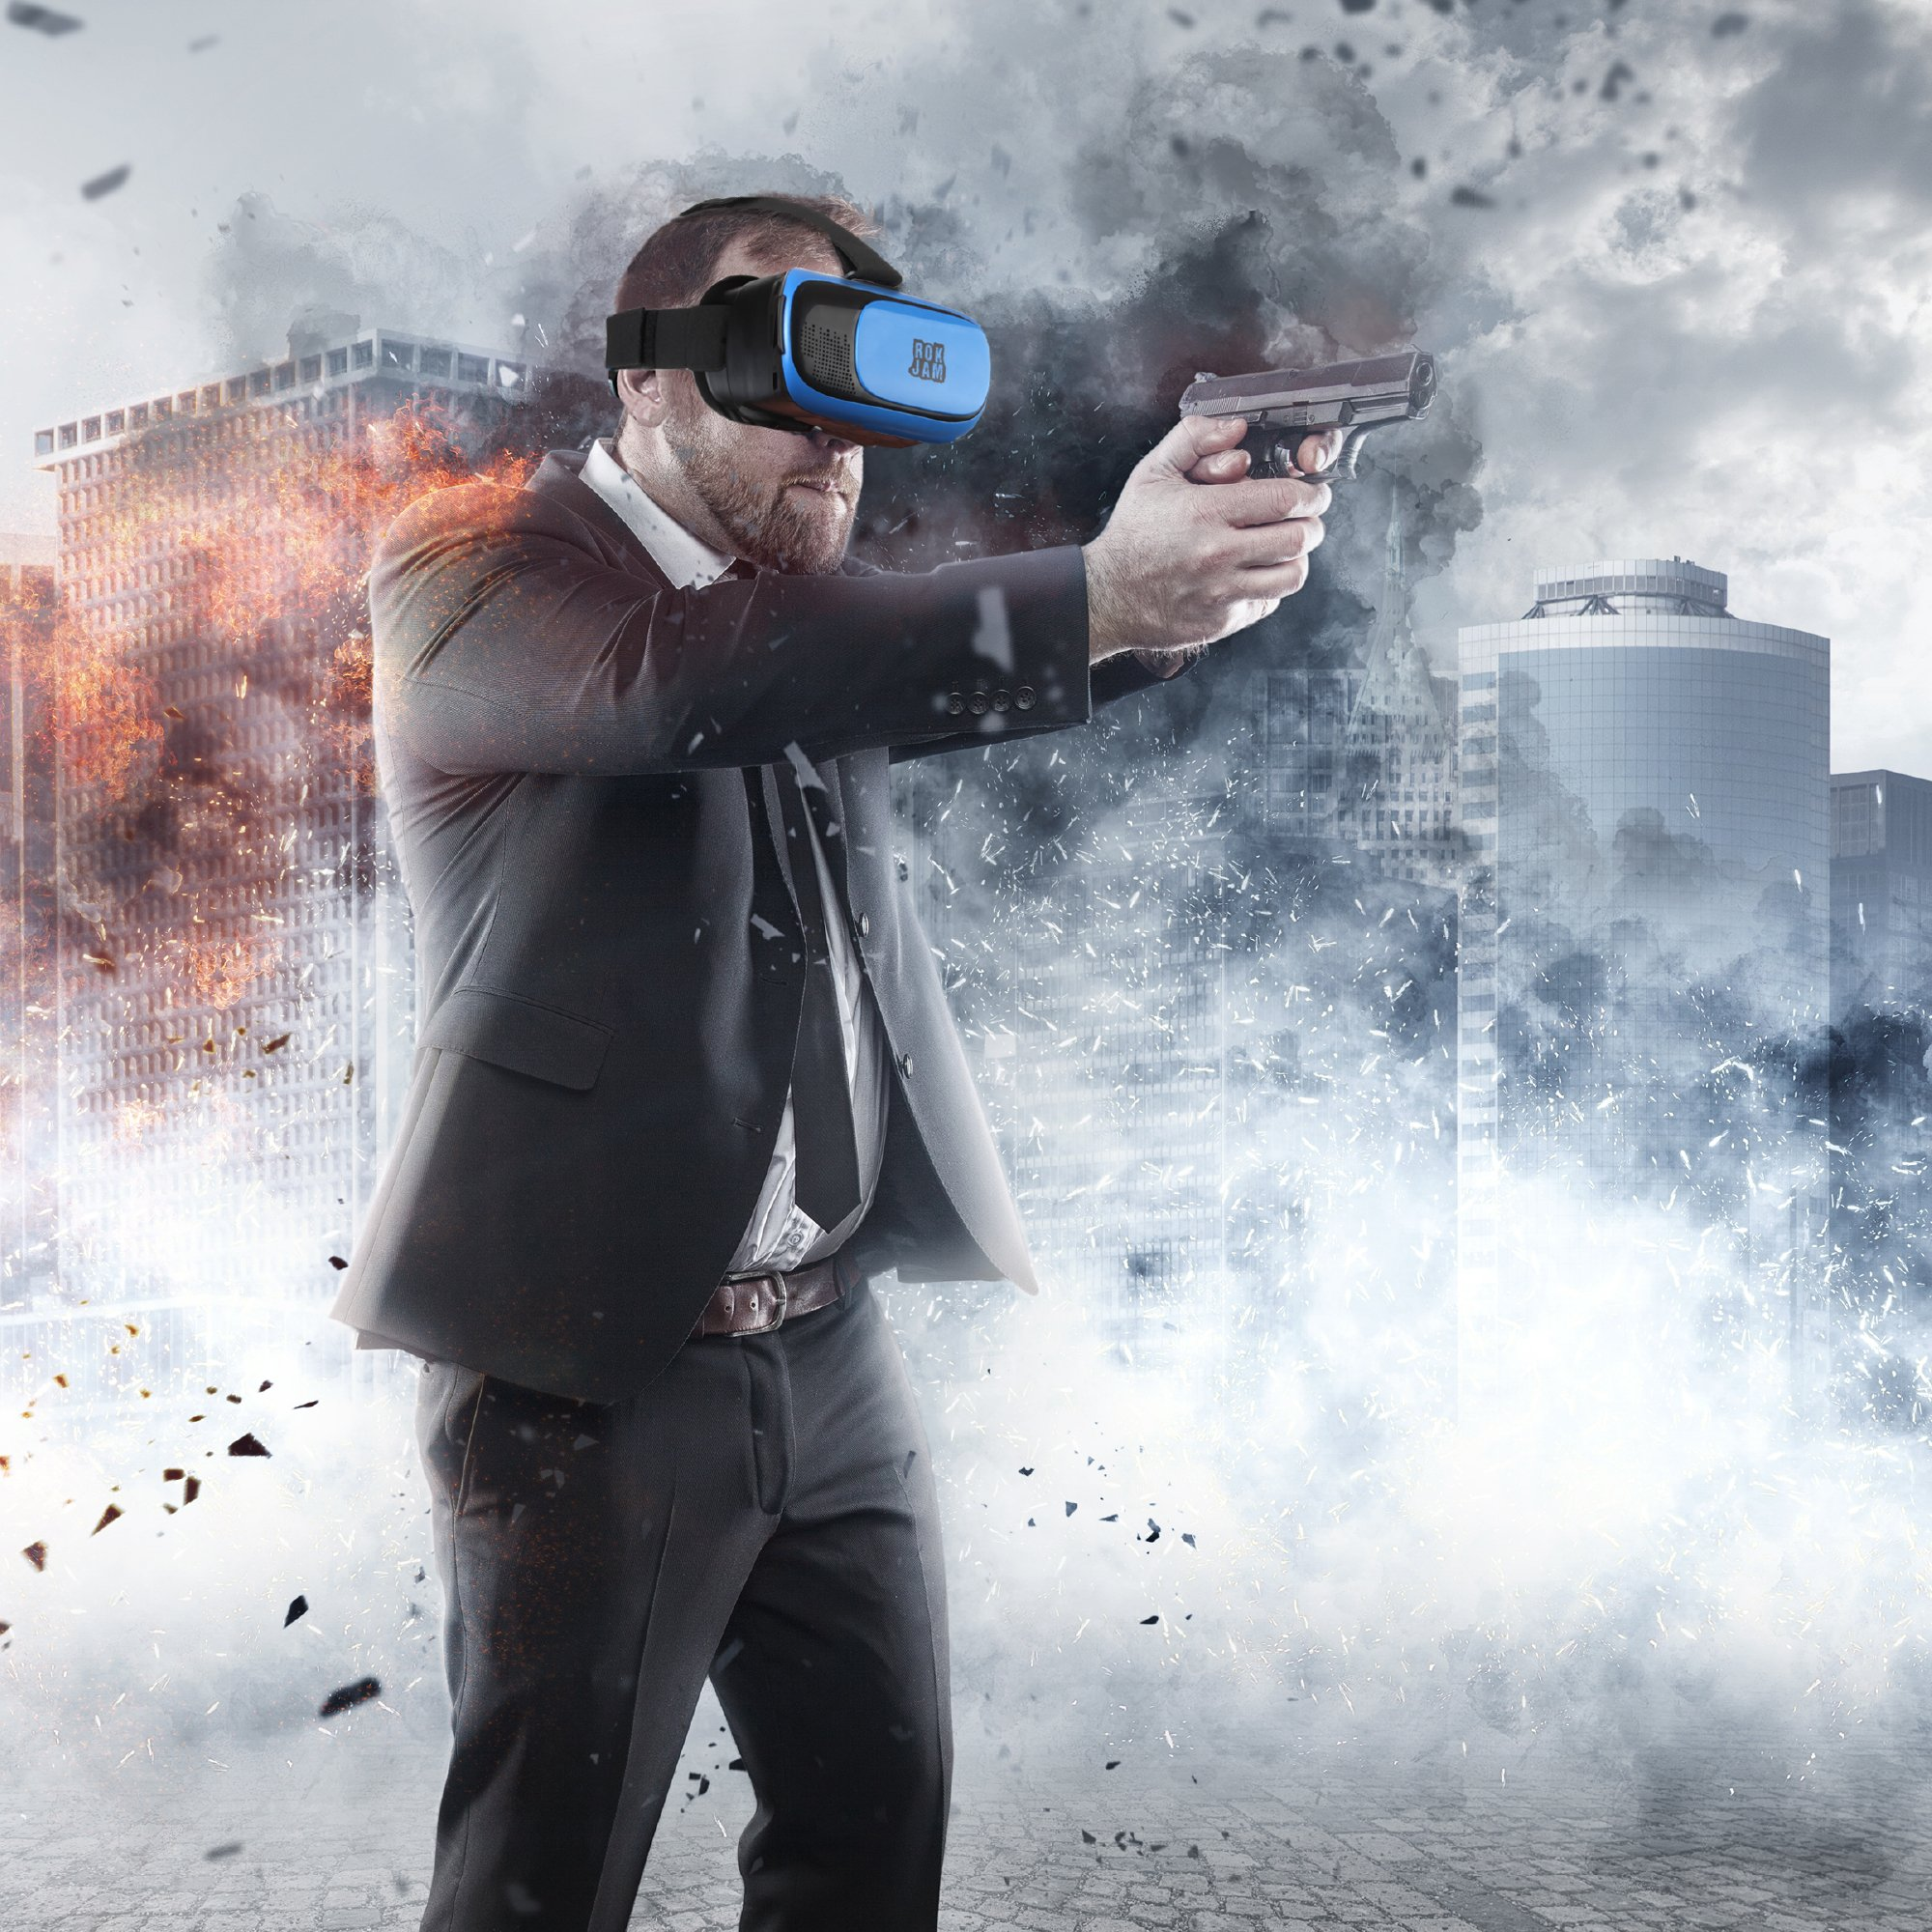 3D VR Headset Technology - Best Virtual Reality Experience For Games & Video - Watch Movies In Breathtaking HD With Your Smartphone Fit Glasses & Helmet - Goggles For Your iPhone & Android Smartphones by Rok Am (Image #2)